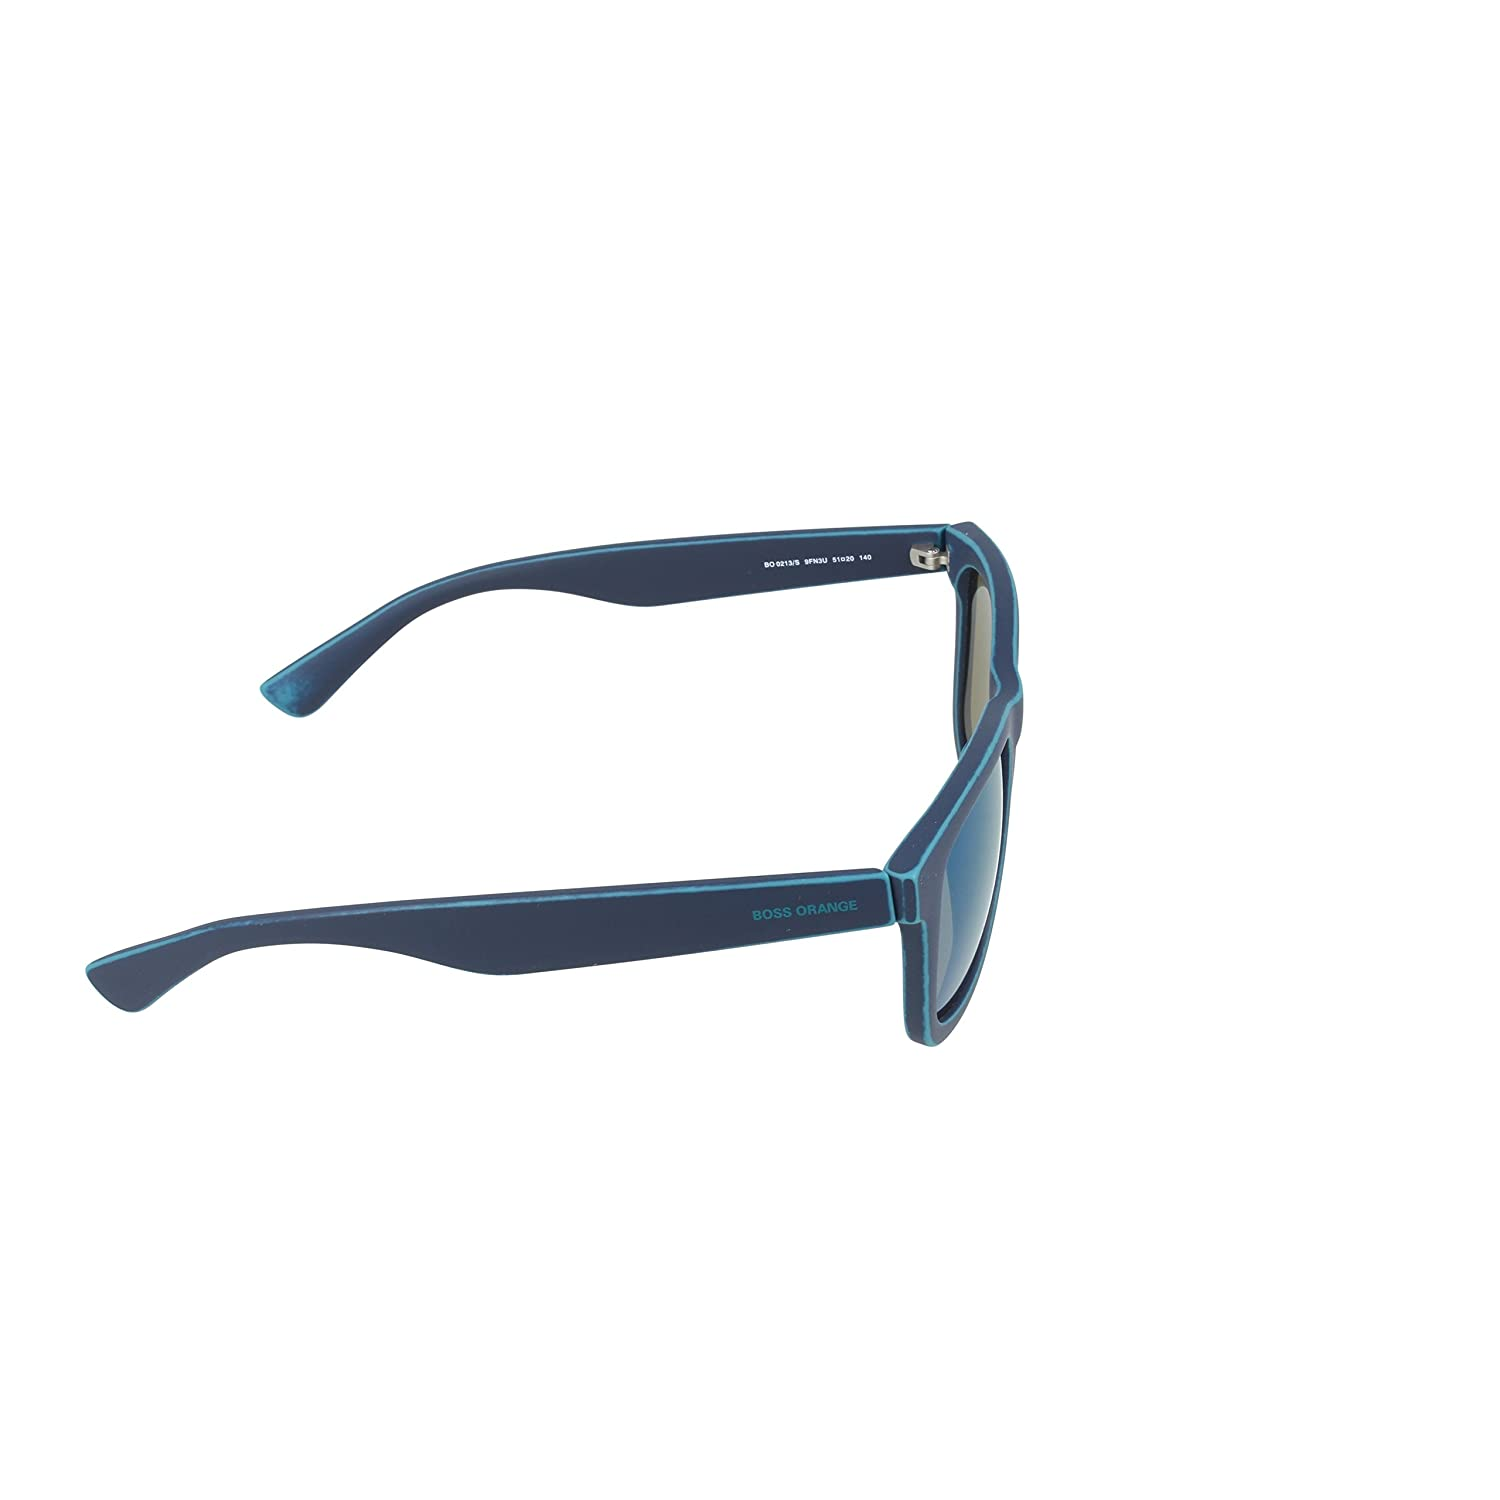 Boss Orange Herren Sonnenbrille BO 0213/S 3U 9FN, Blau (Bluette Green/Khaki Grey Speckled Blue), 51